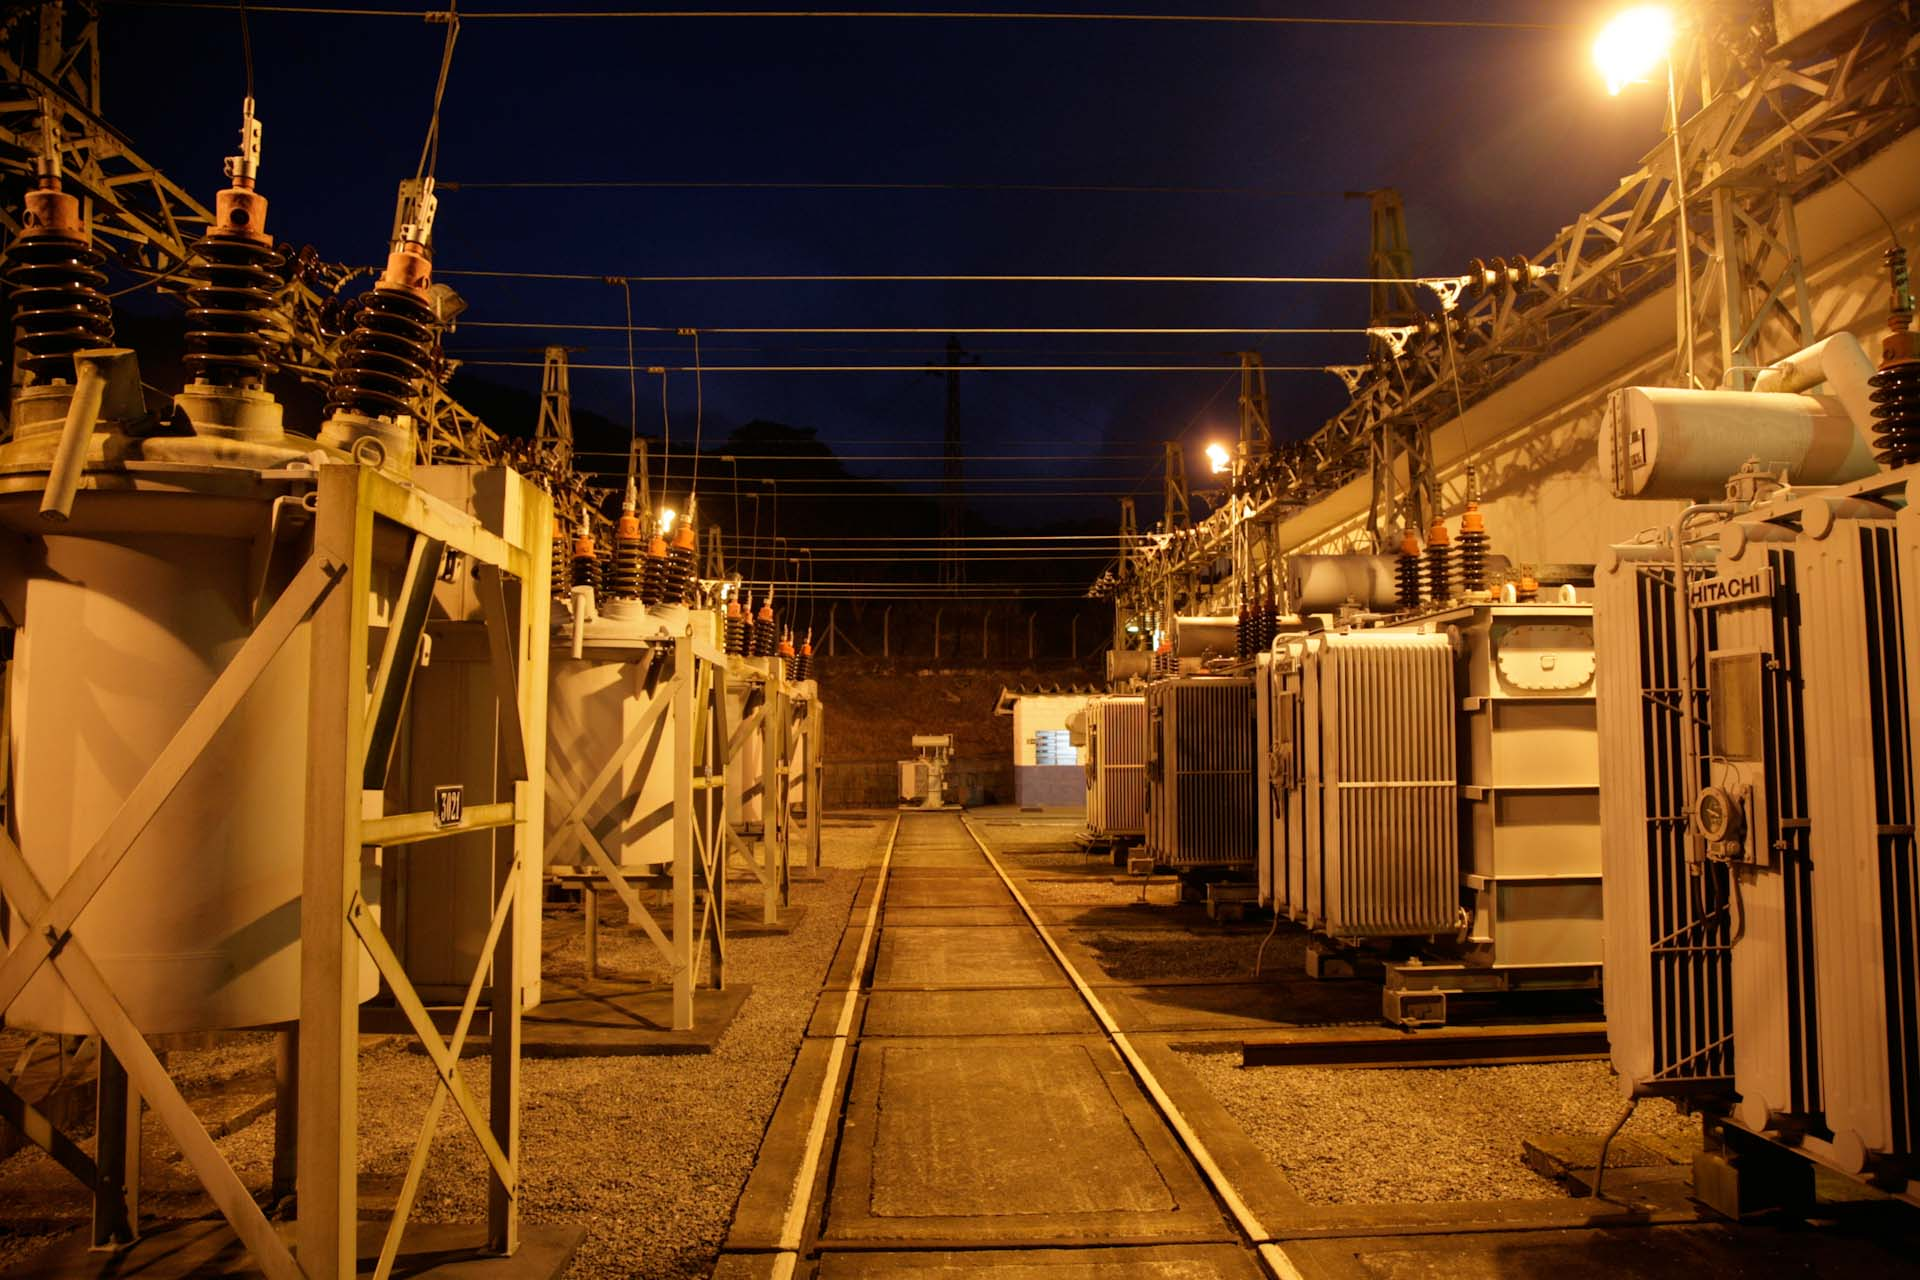 Since the power supply in the district often fails, a separate power station of the Railway Company provides constant power for the line to the Atlantic, which nowadays transports ores mostly.